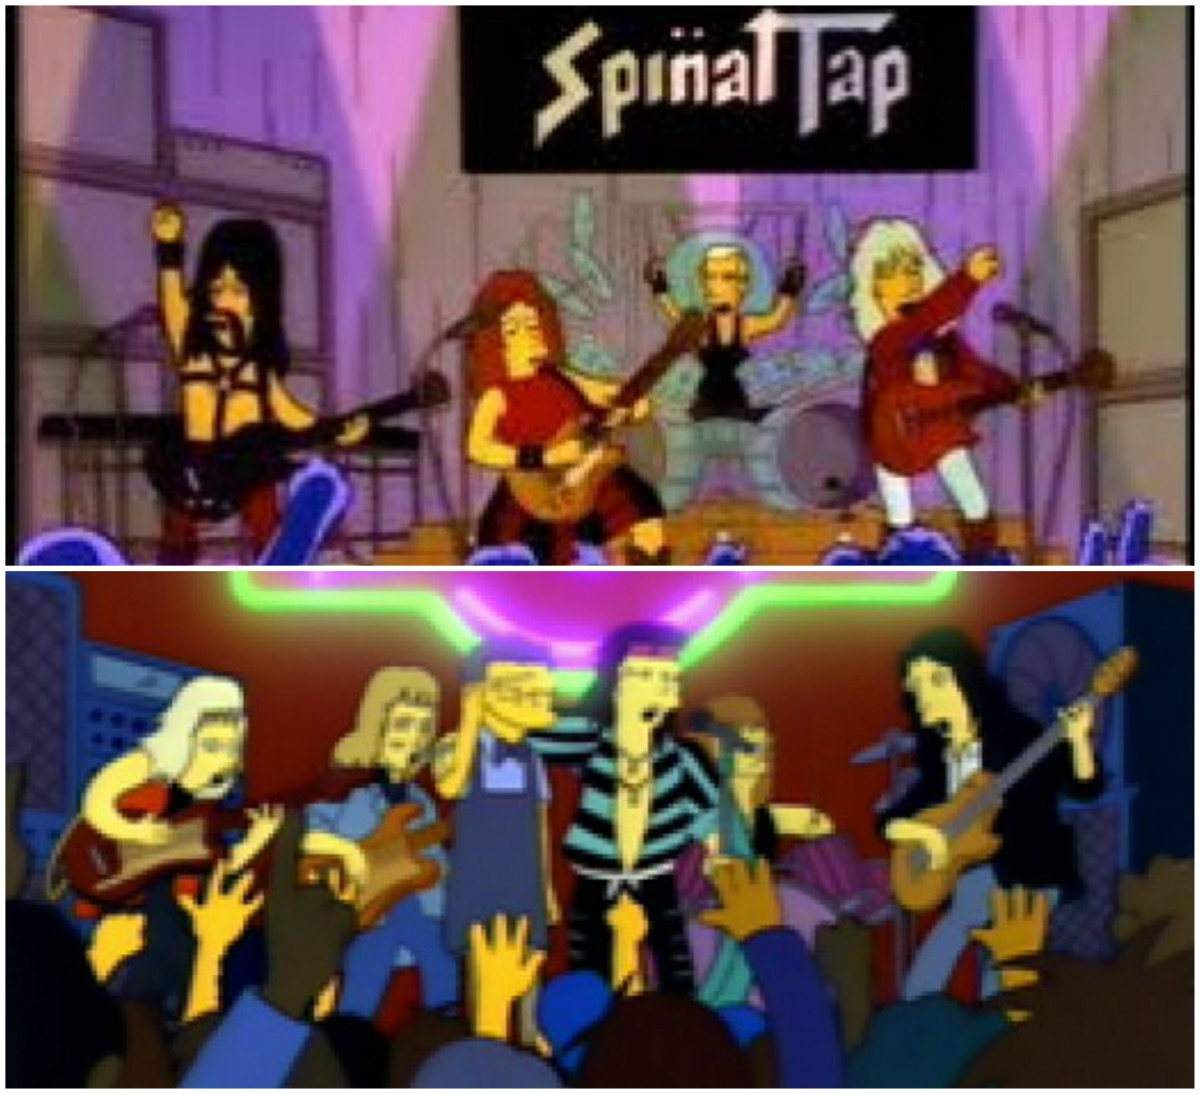 Top: Spinal Tap, bottom: Aerosmith